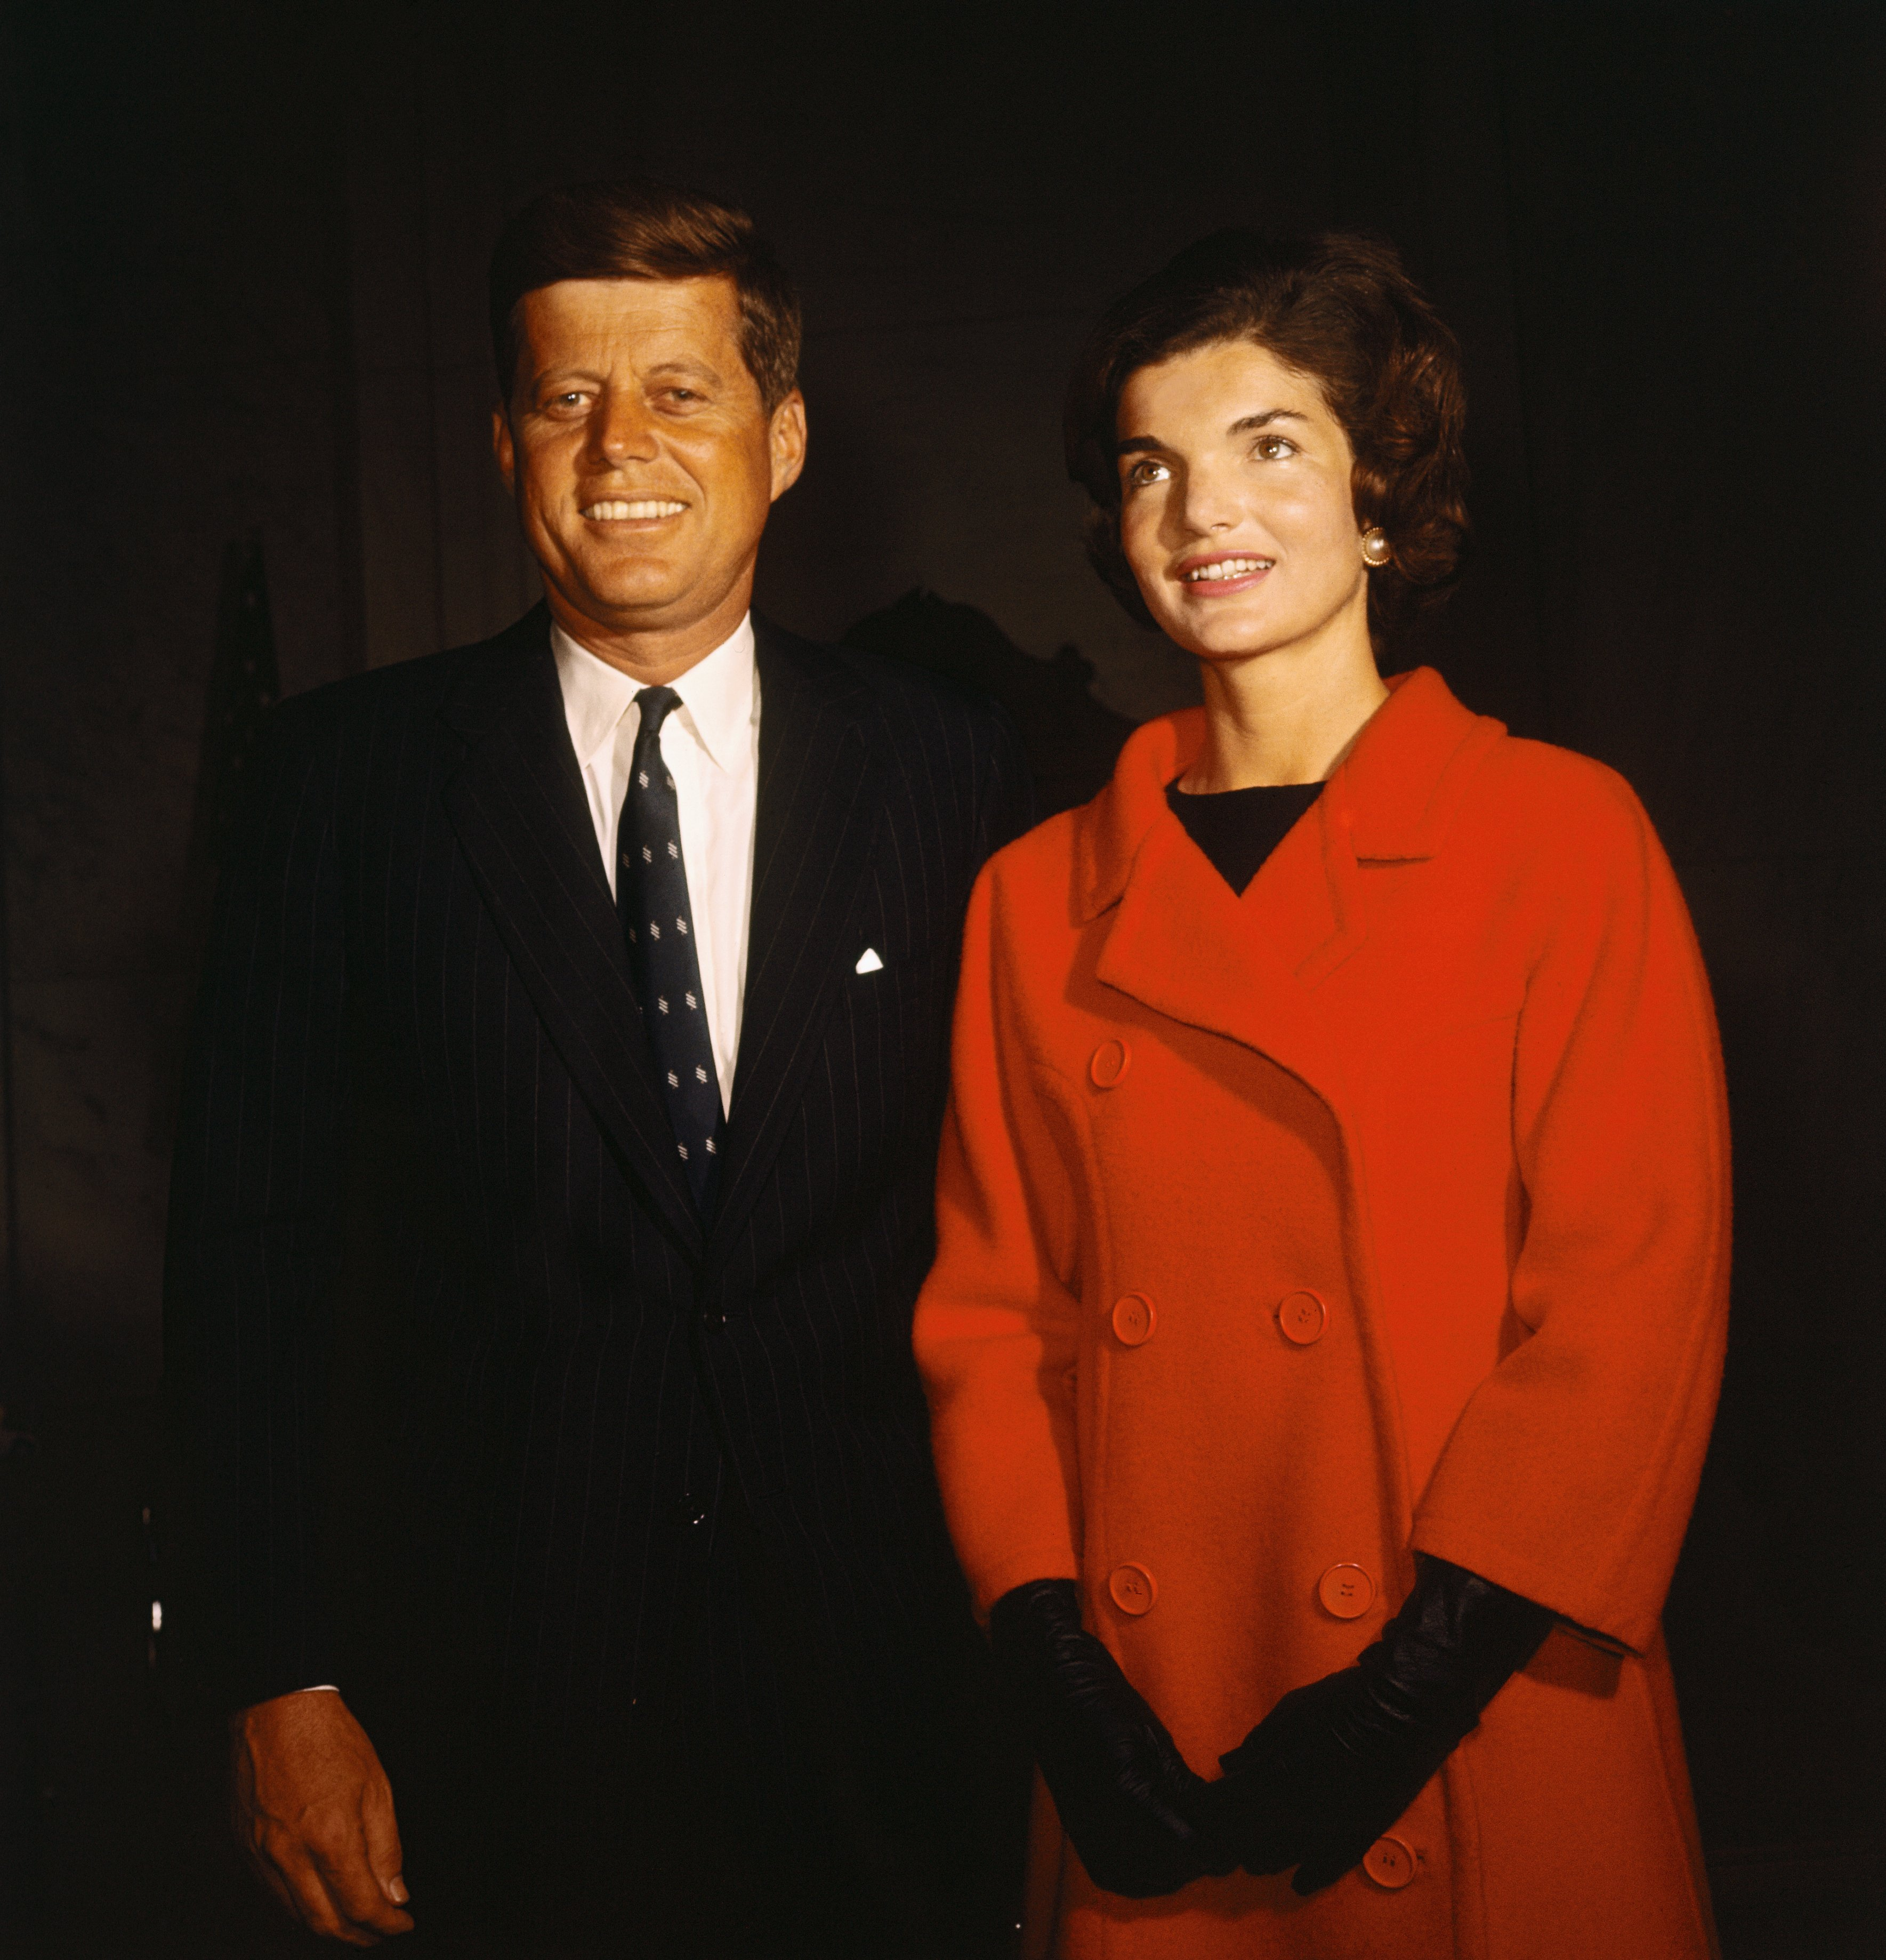 John F. Kennedy and wife Jacqueline Kennedy during his announcement for seeking presidential nomination on January 2, 1960 | Photo: Getty Images